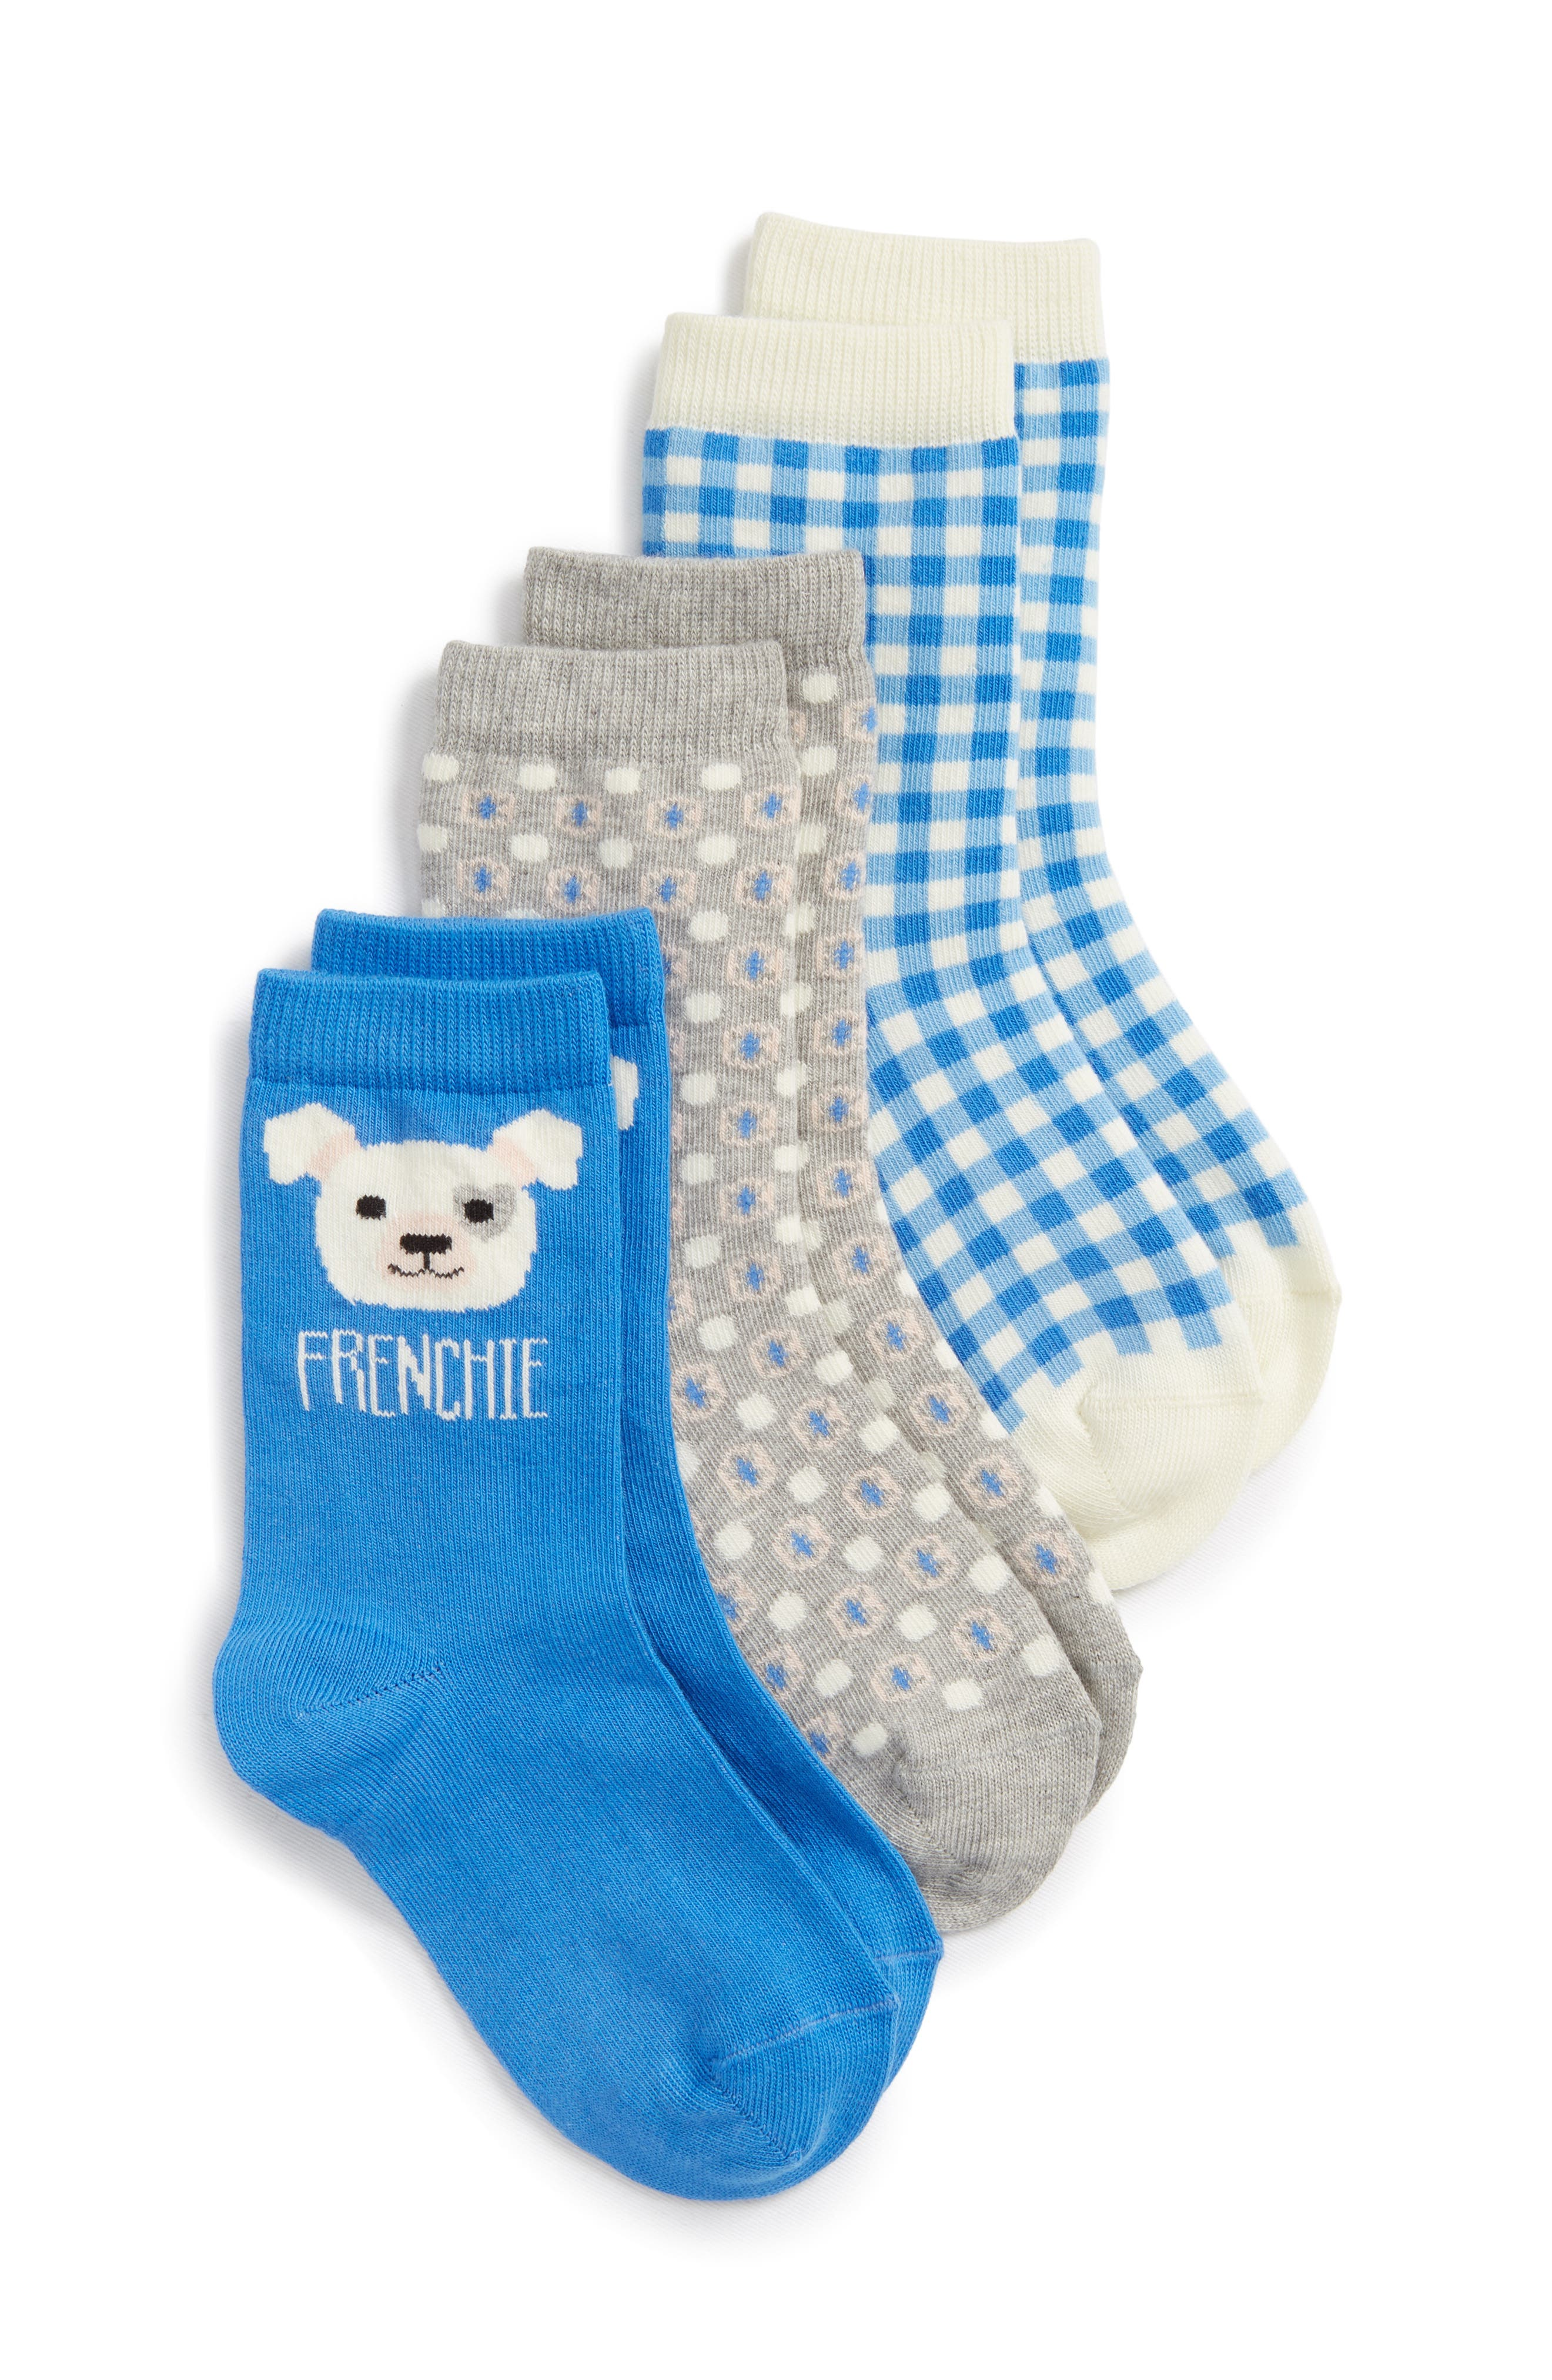 Frenchie 3-Pack Crew Socks,                             Main thumbnail 1, color,                             BLUE CAMP